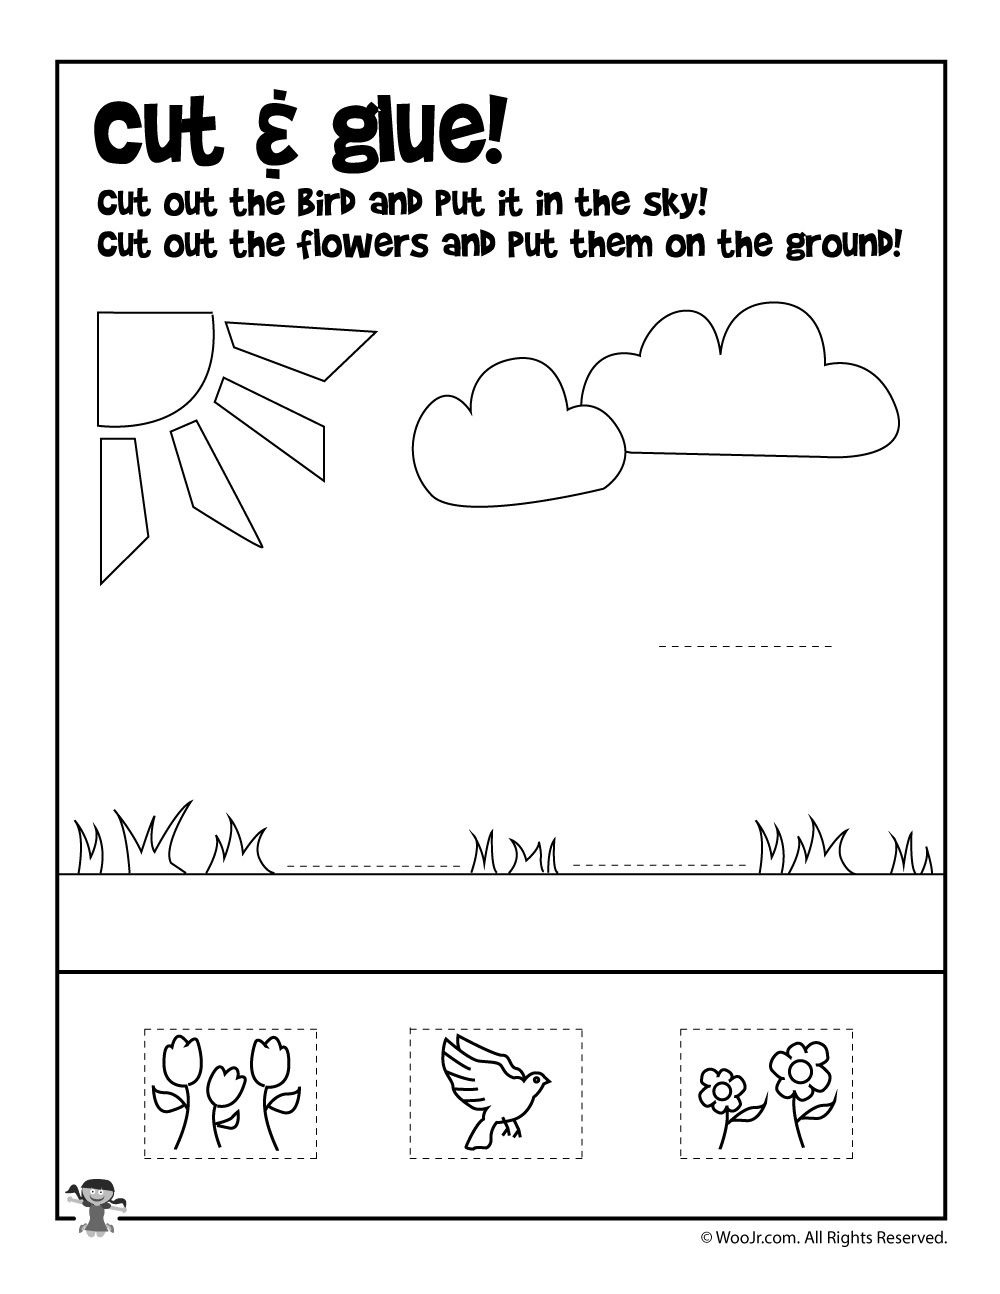 Free Printable Cut And Glue Worksheets